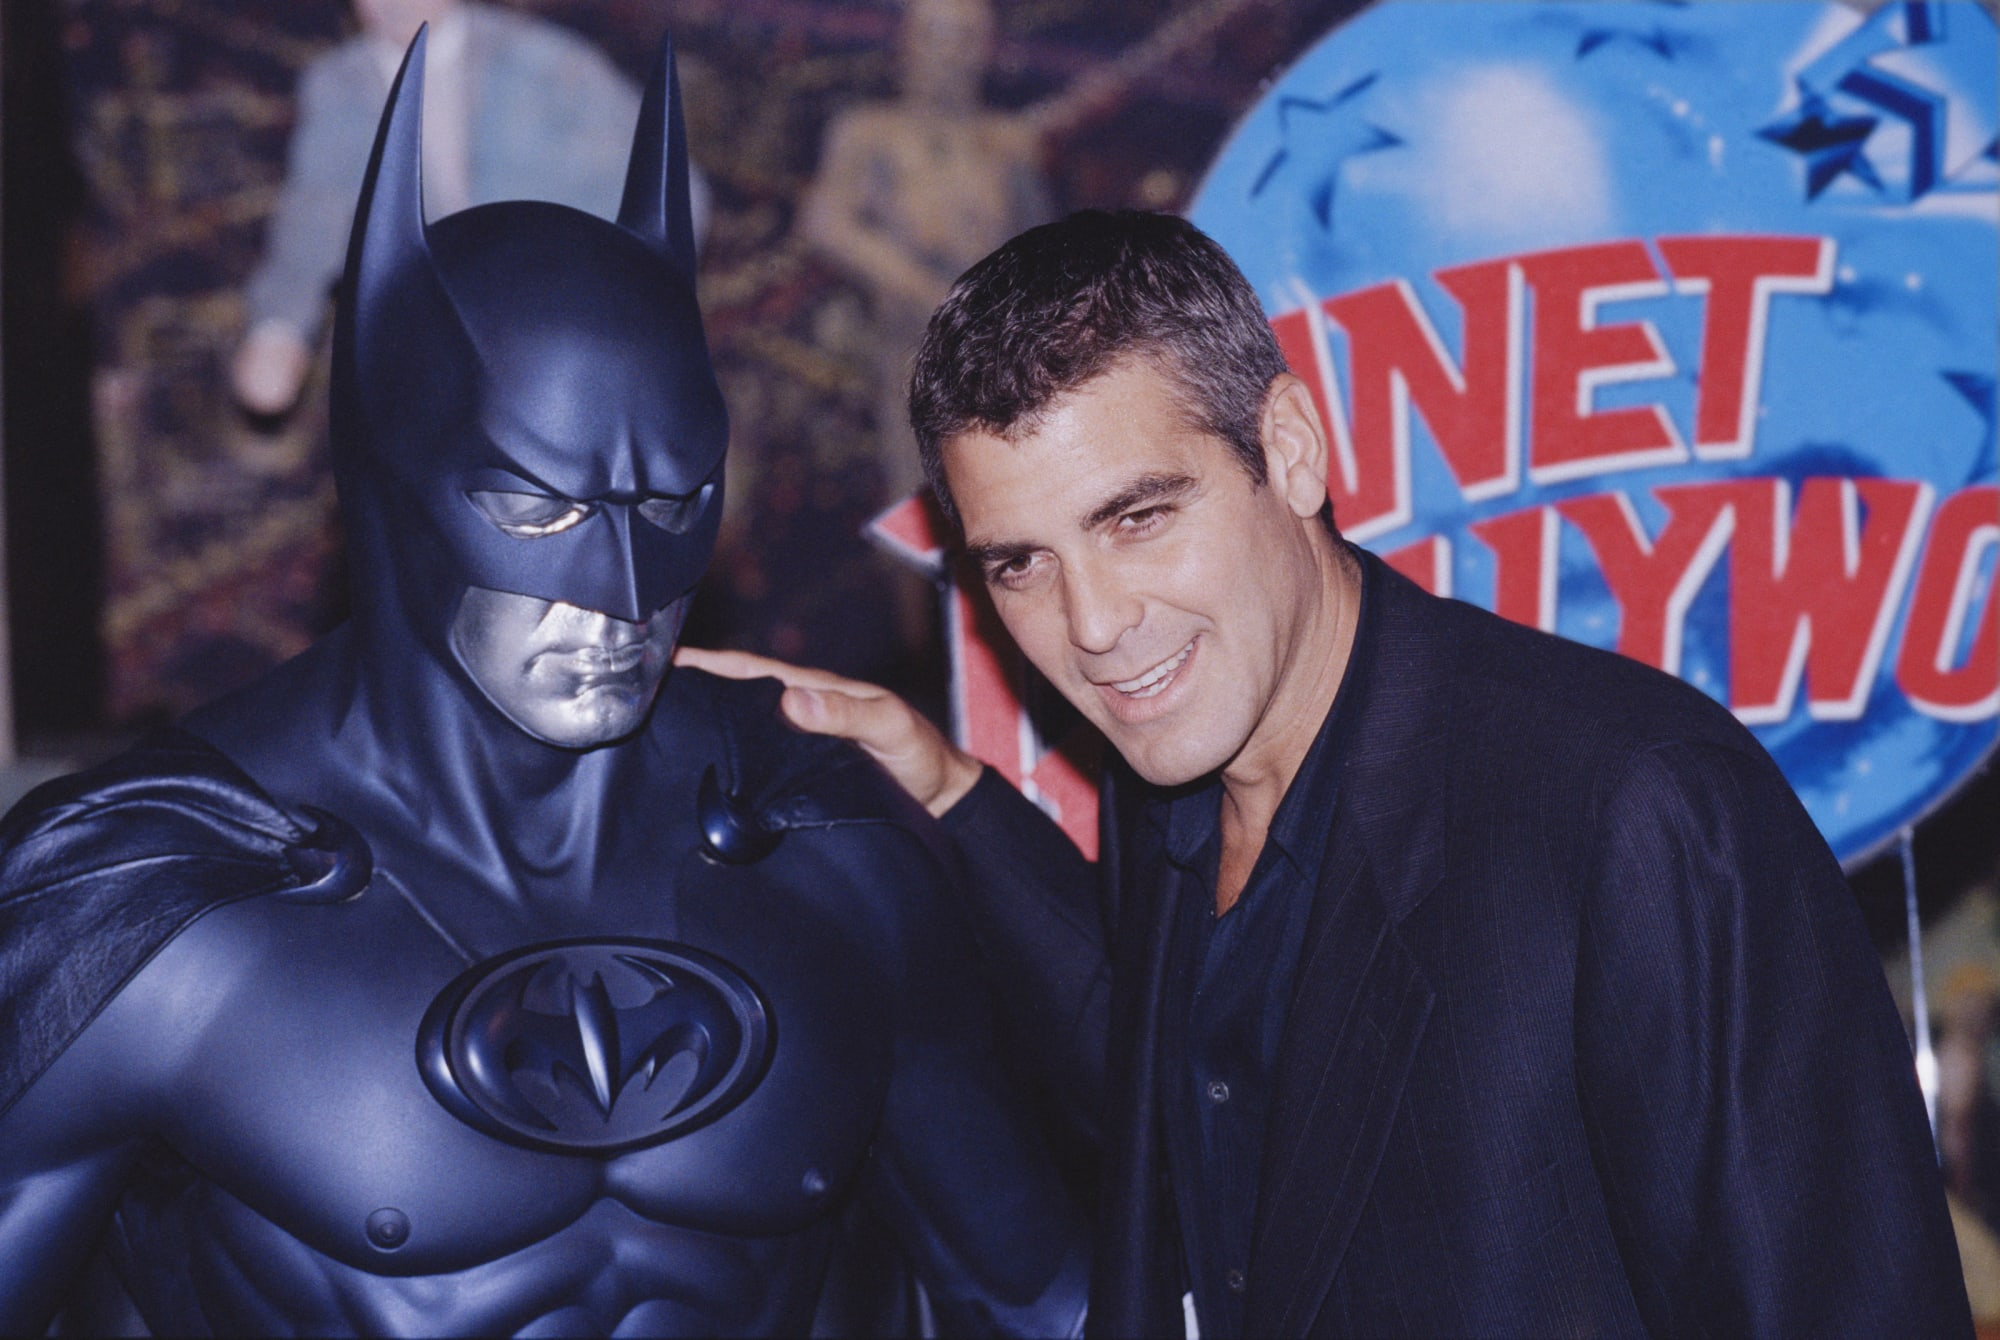 George Clooney opens up about how Batman and Robin almost ruined his career